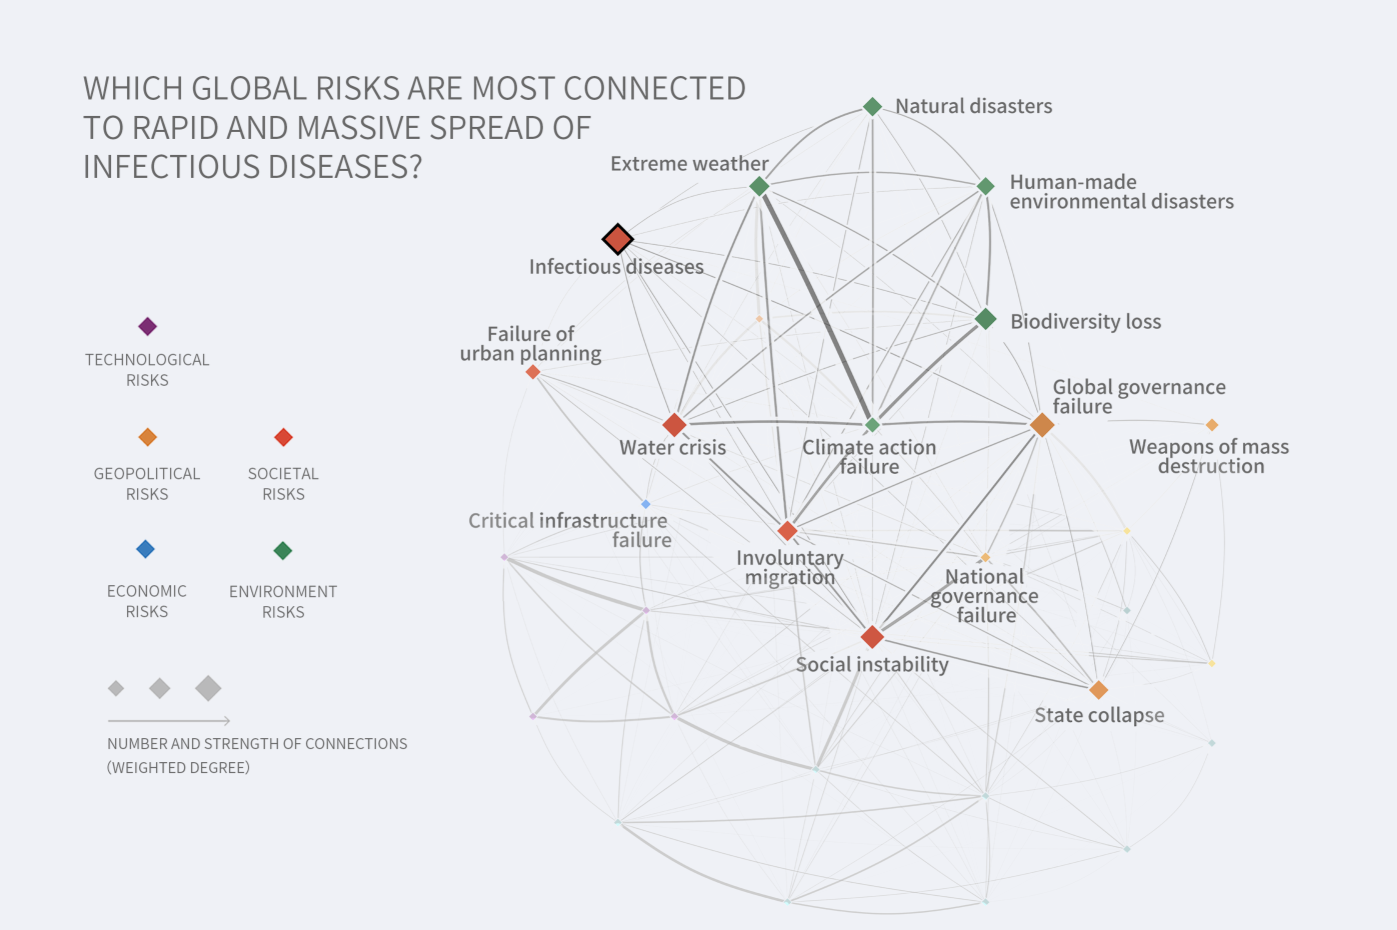 Which global risks are most connected to Rapid and massive spread of infectious diseases?